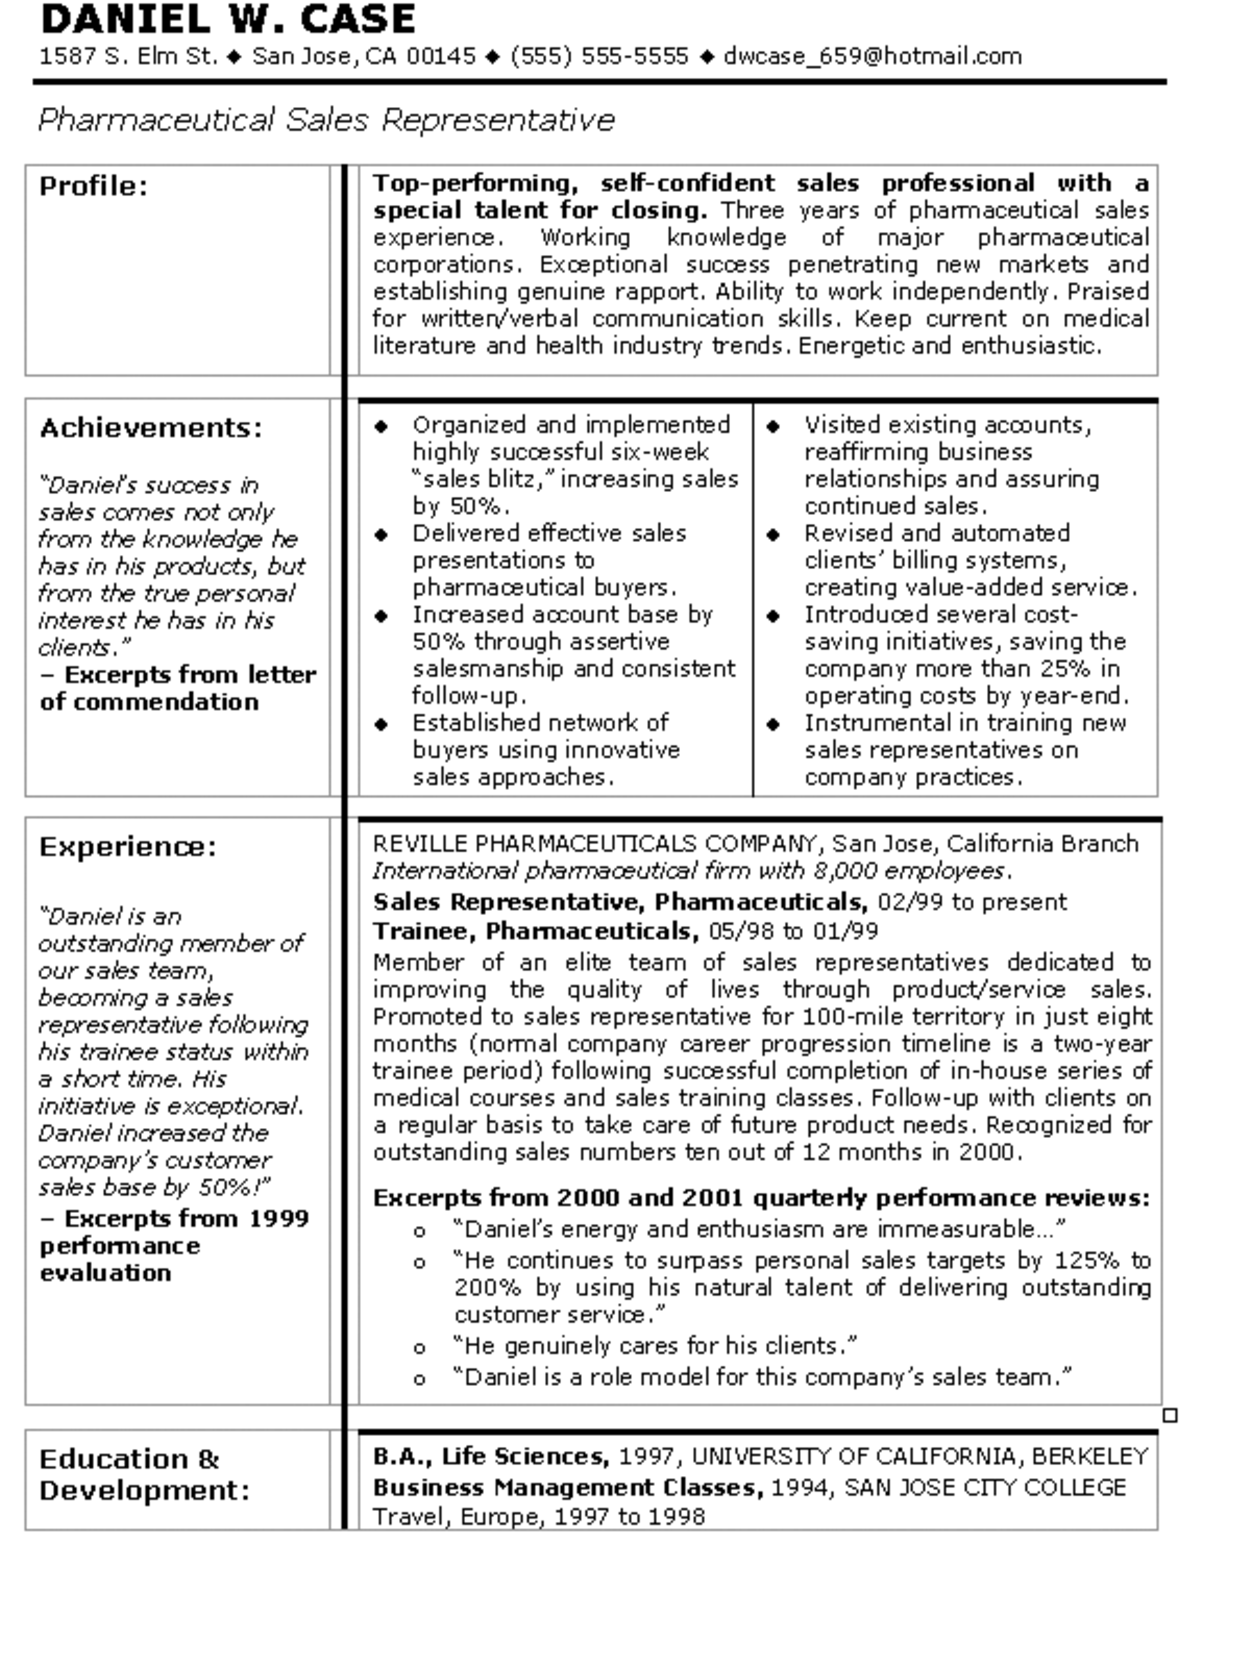 sample resume for pharmaceutical sales manager professional | Home ...